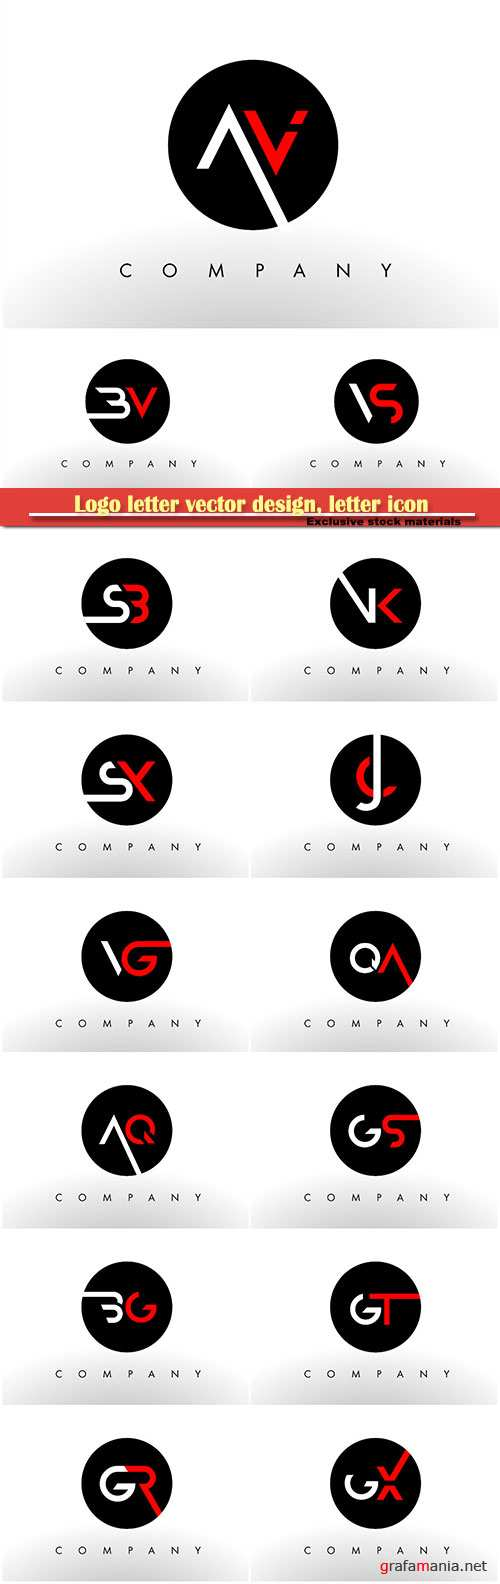 Logo letter vector design, letter icon # 16